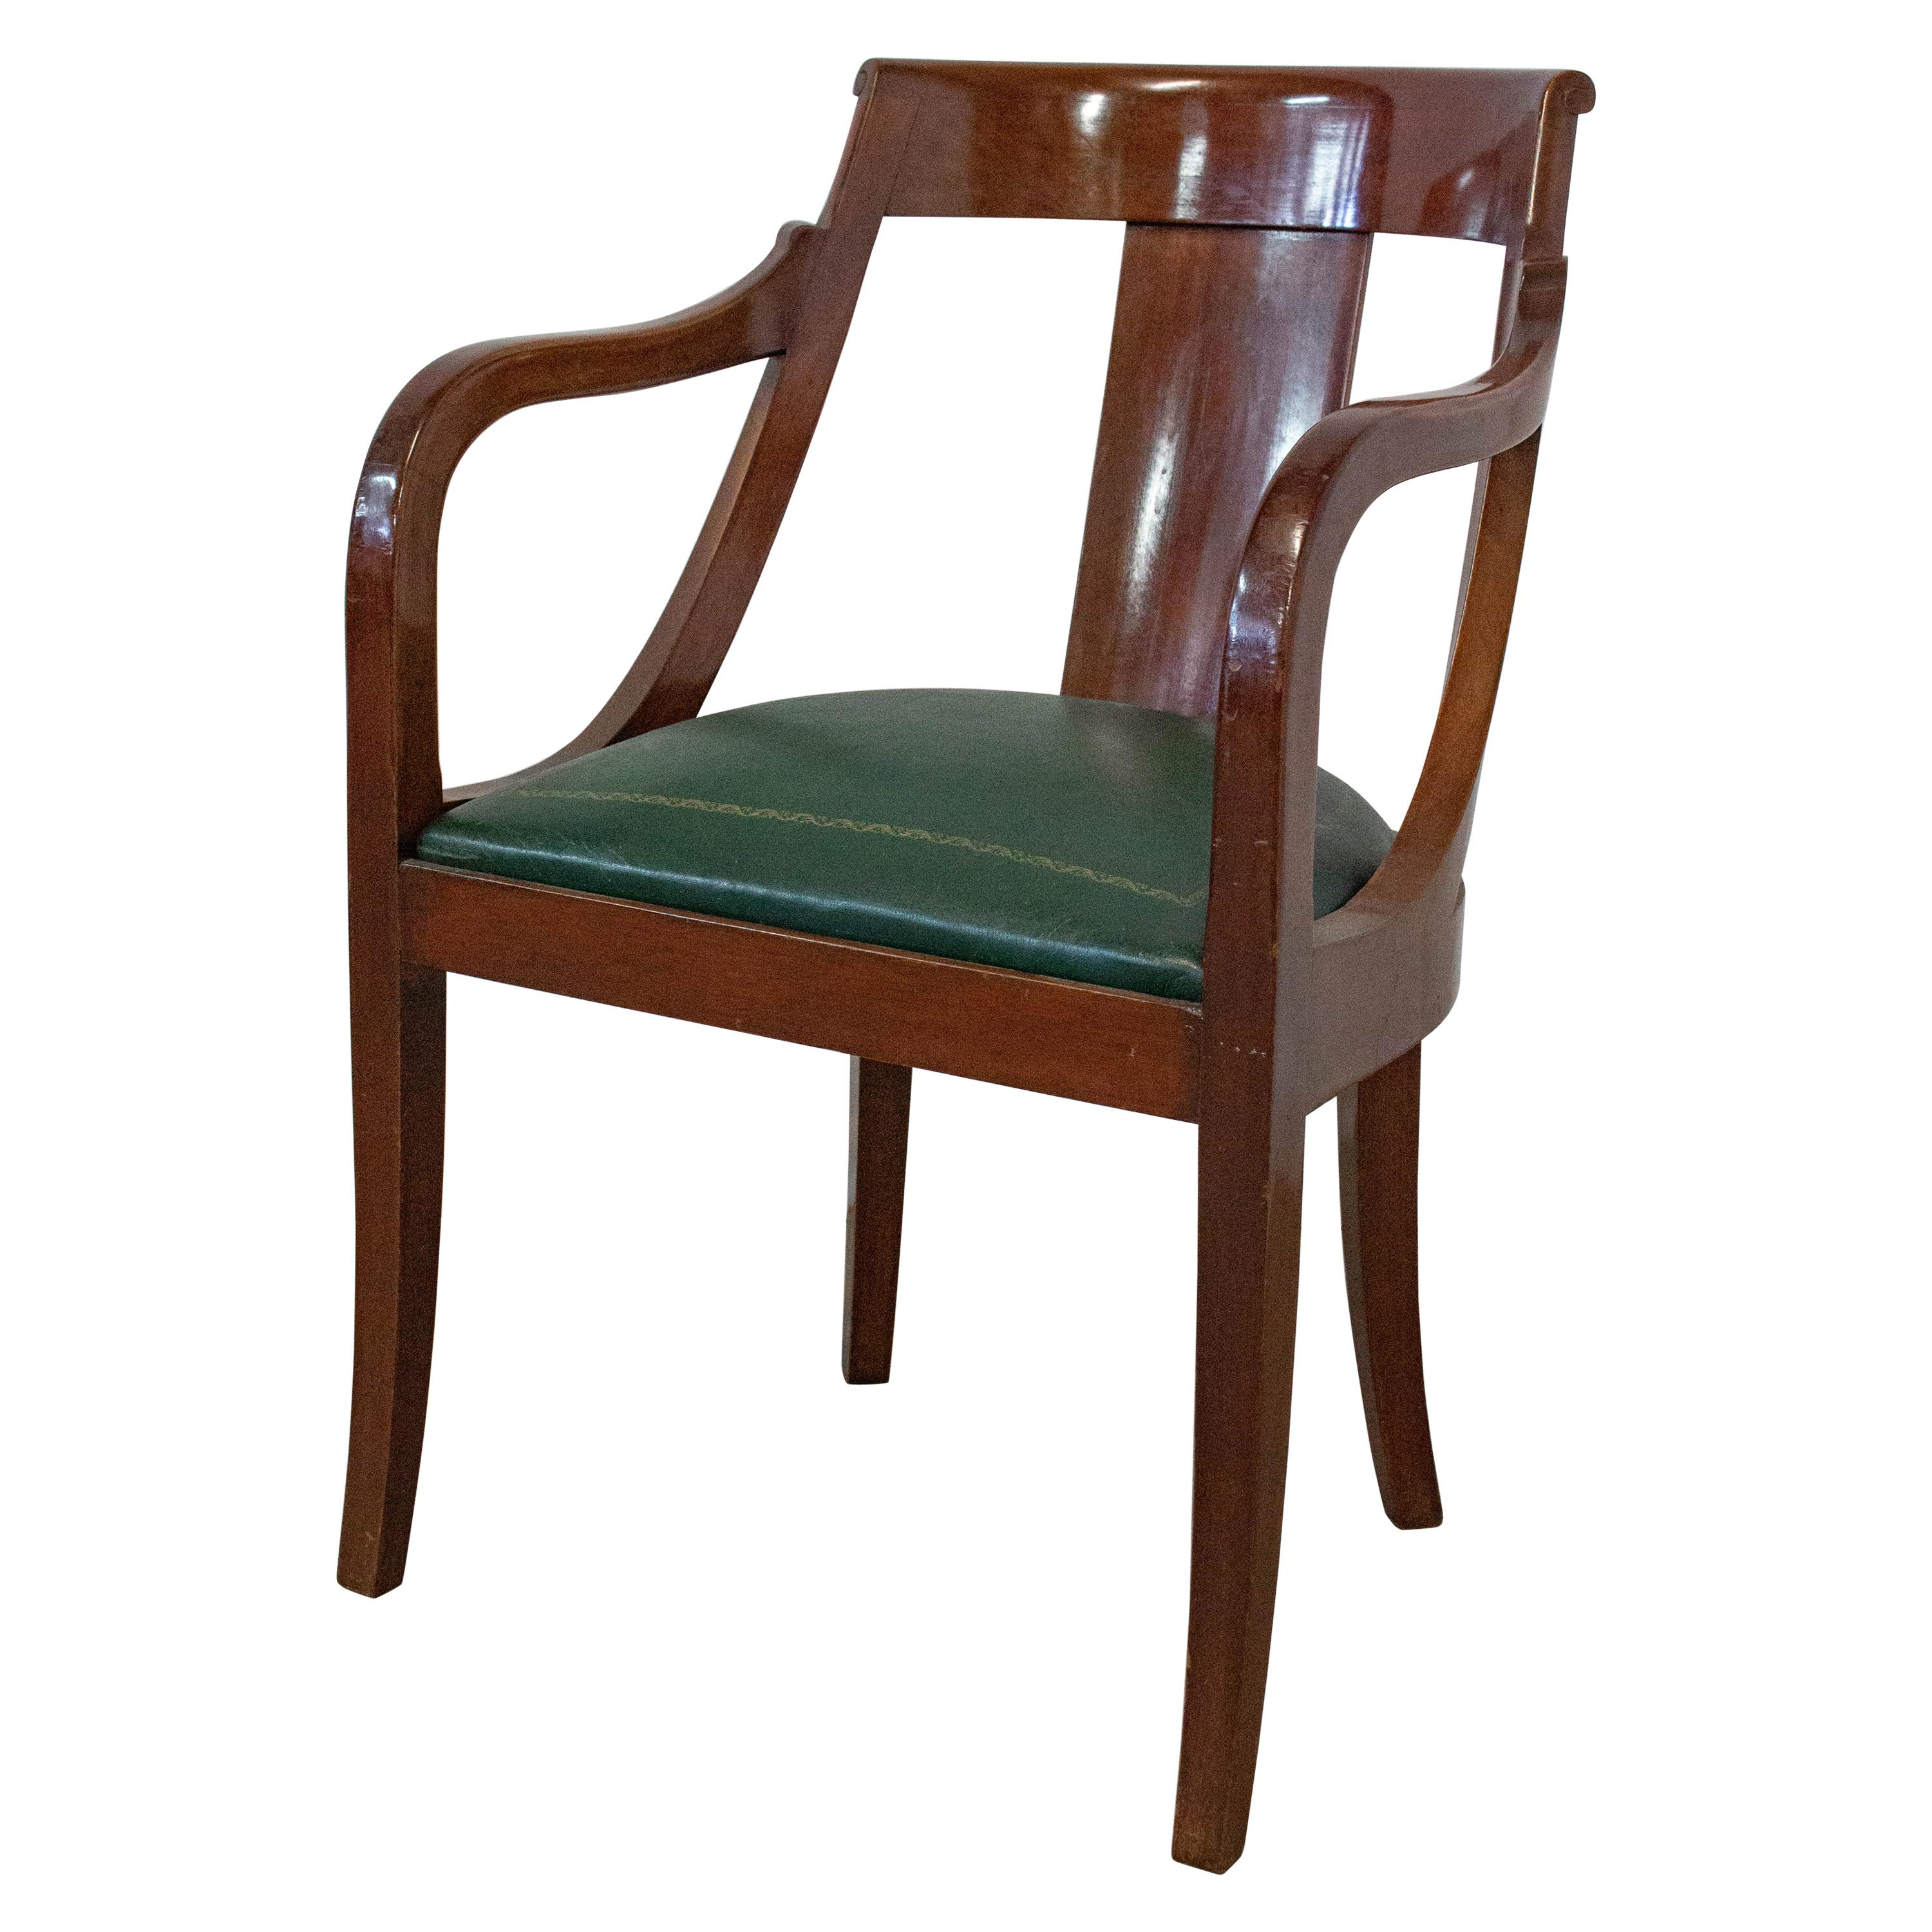 Empire Armchair Desk Chair French 20th Century Green Leather